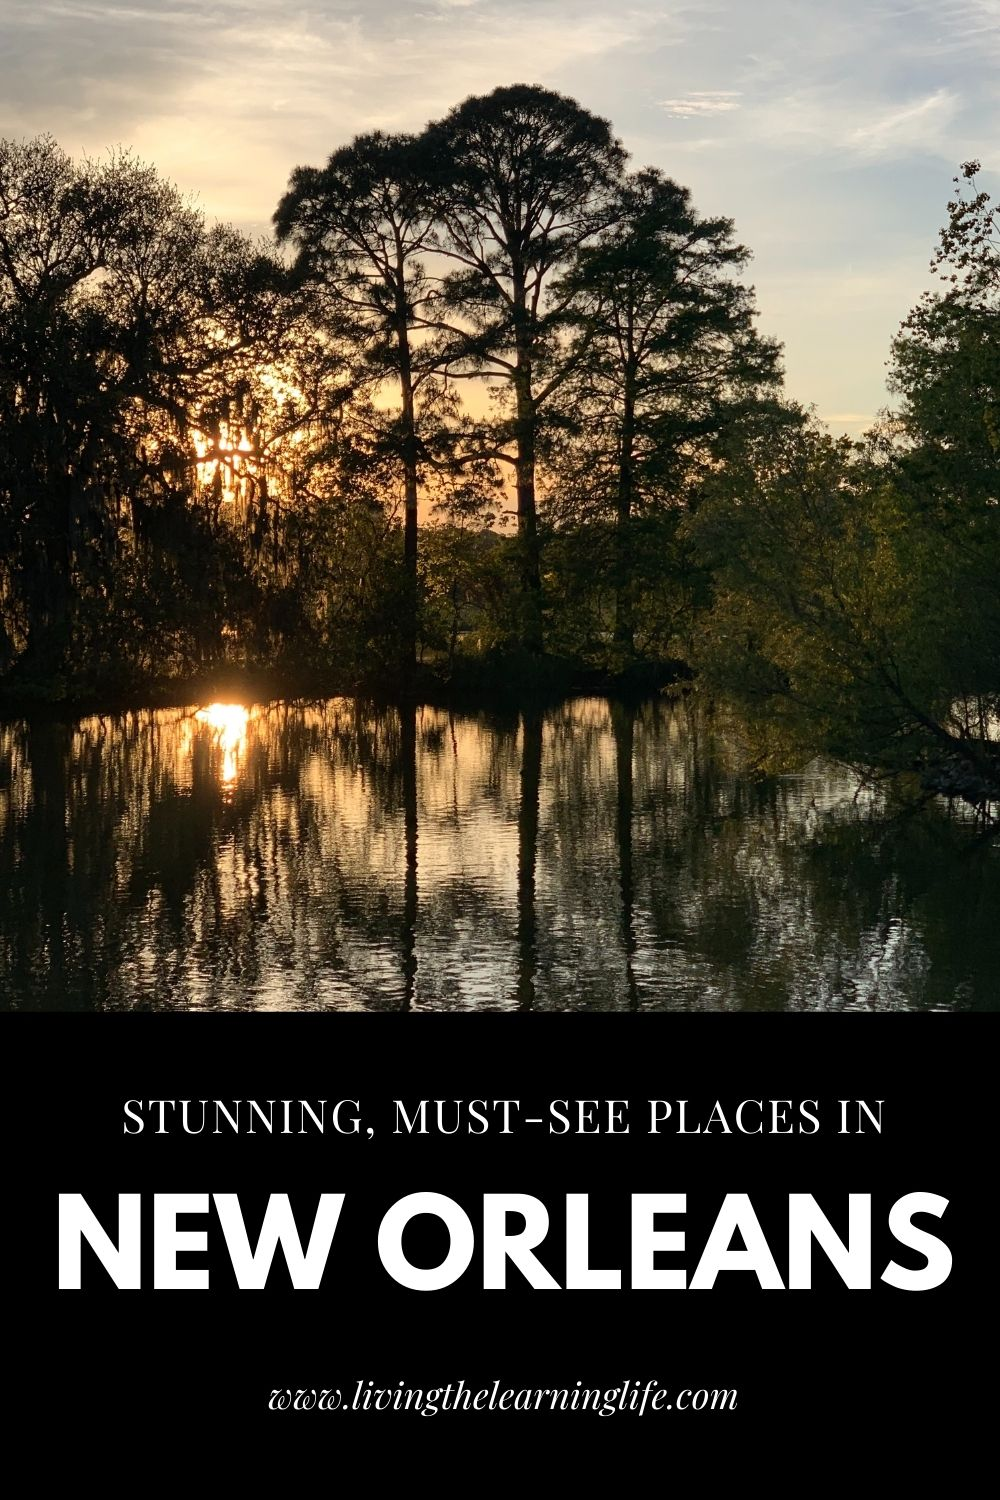 must-see places in new orleans